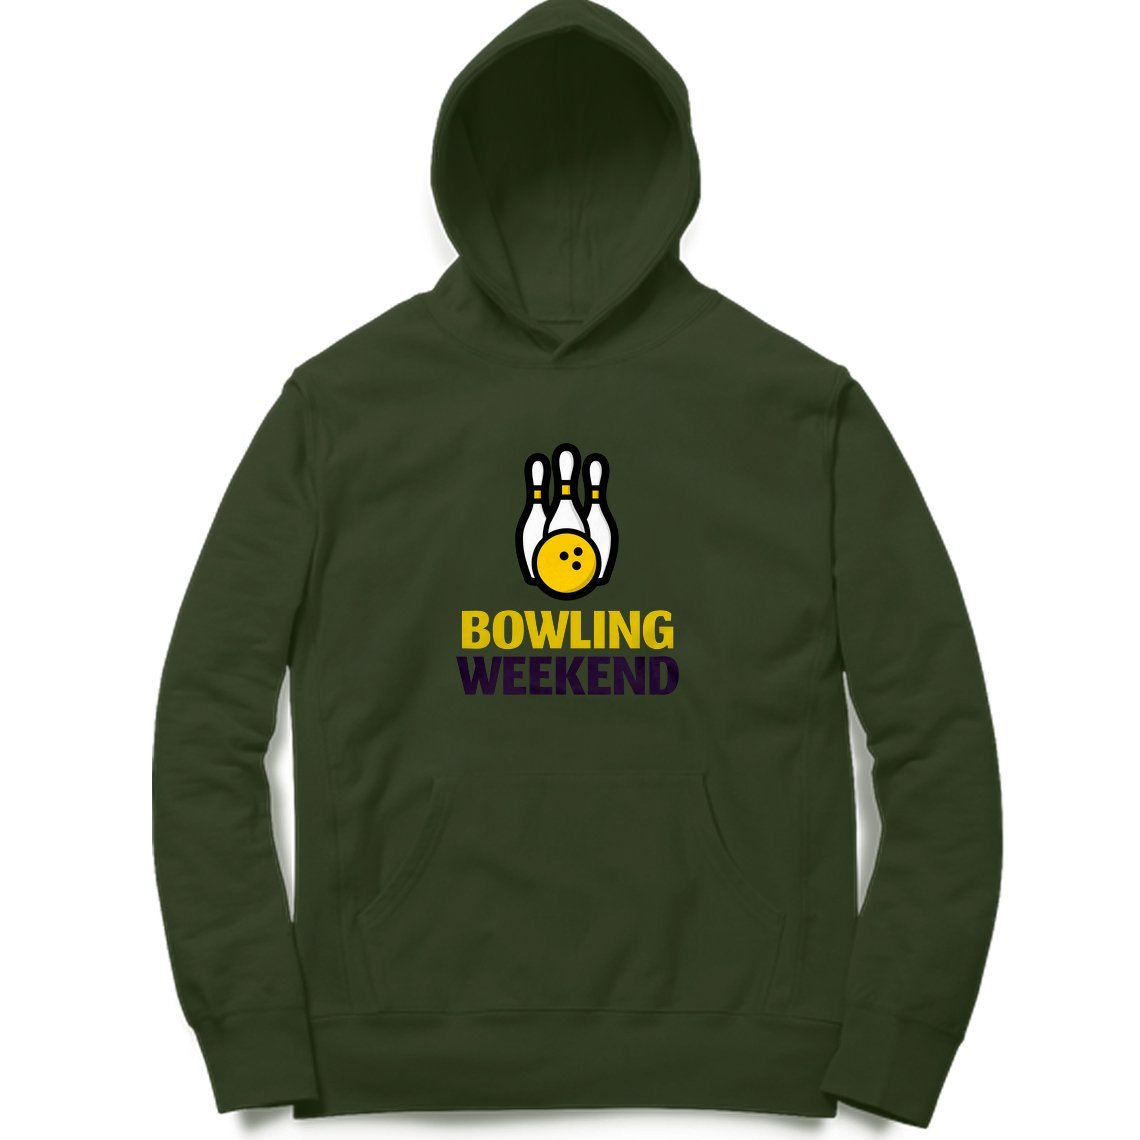 Bowling Weekend Clothing Printrove Olive Green S